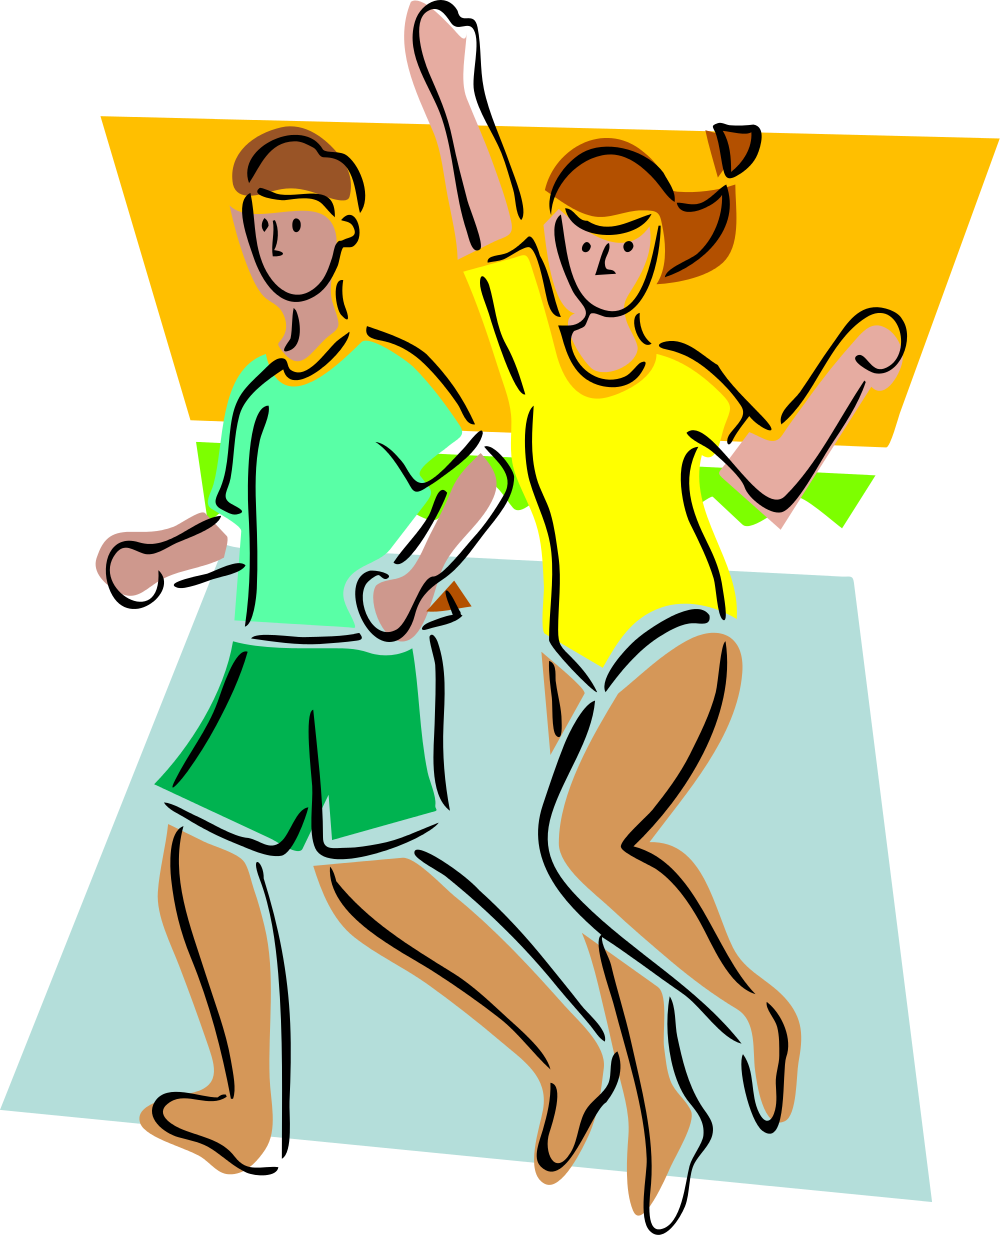 Gym clipart el gimnasio, Gym el gimnasio Transparent FREE.